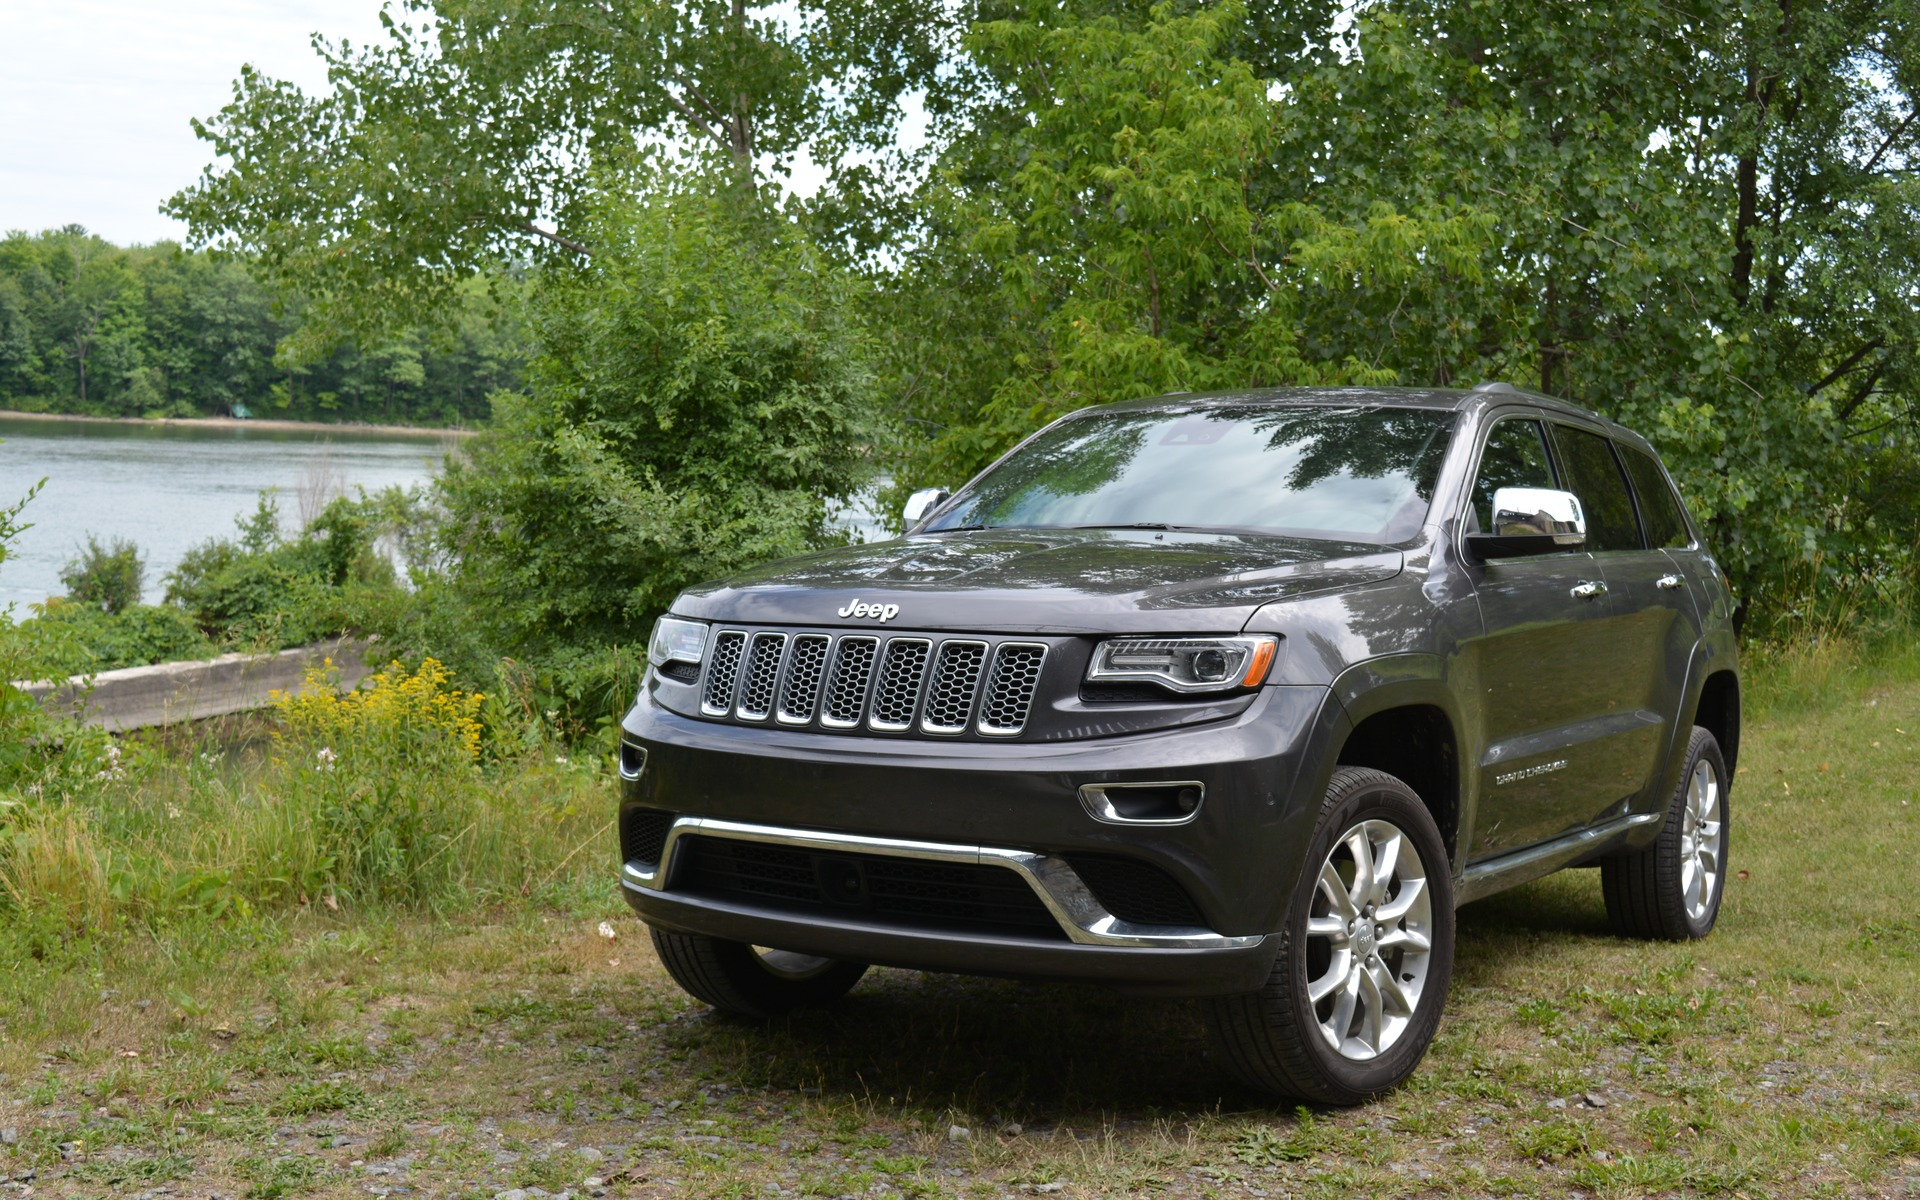 2016 Jeep Grand Cherokee Summit EcoDiesel: Truly at the